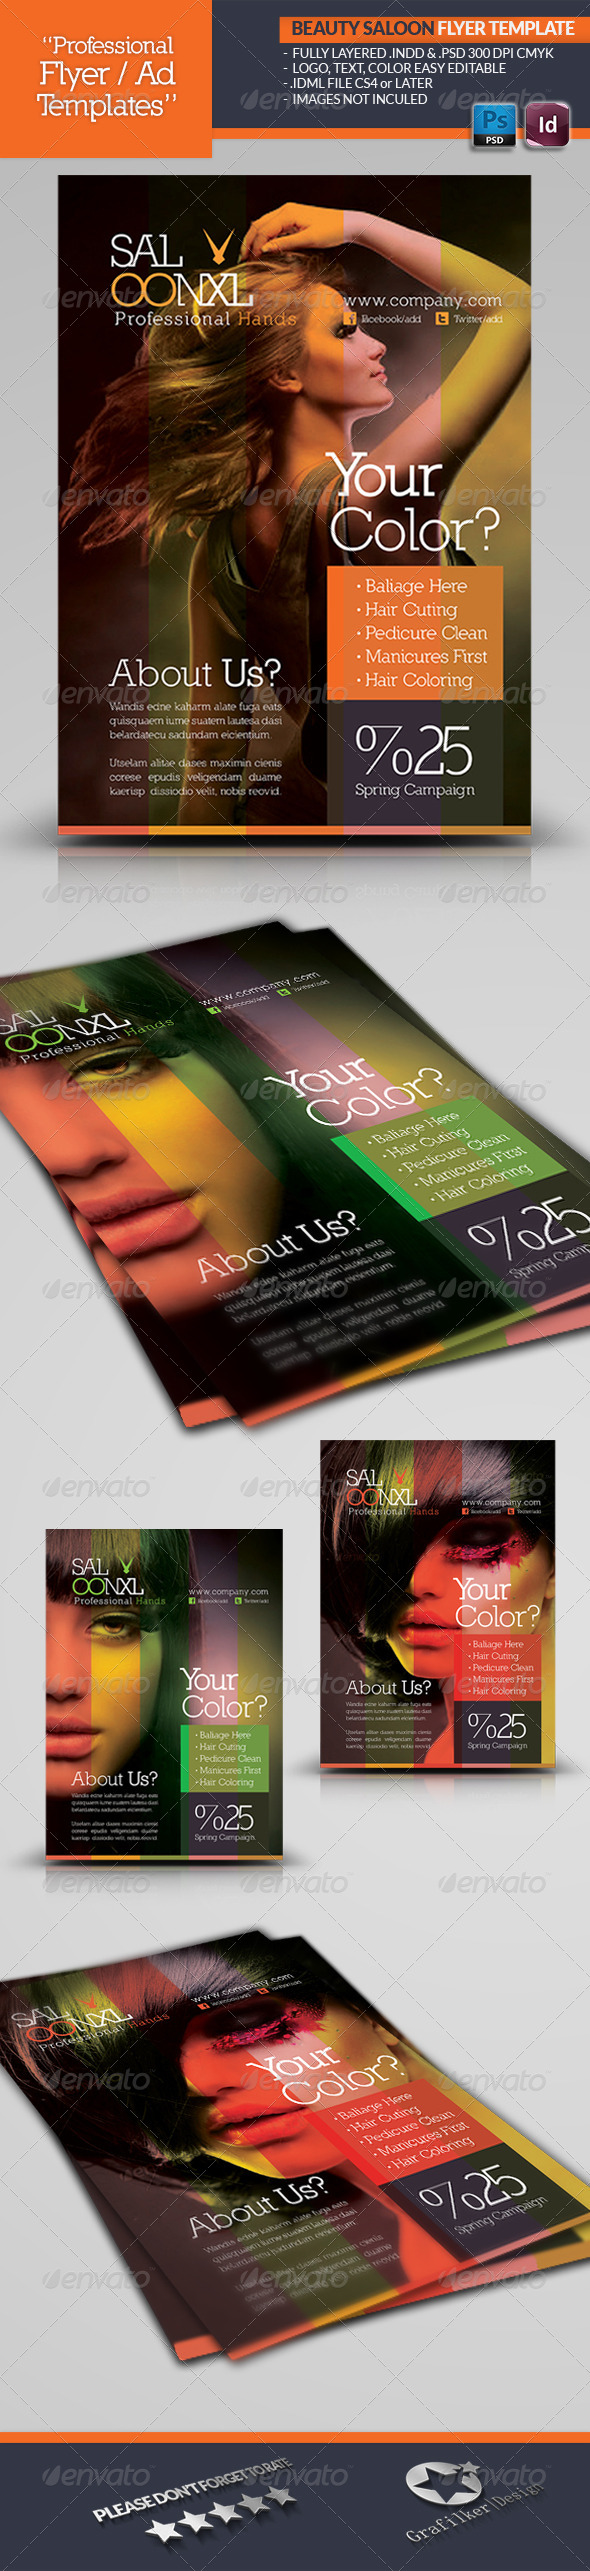 GraphicRiver Beauty Saloon Flyer Template 4567440